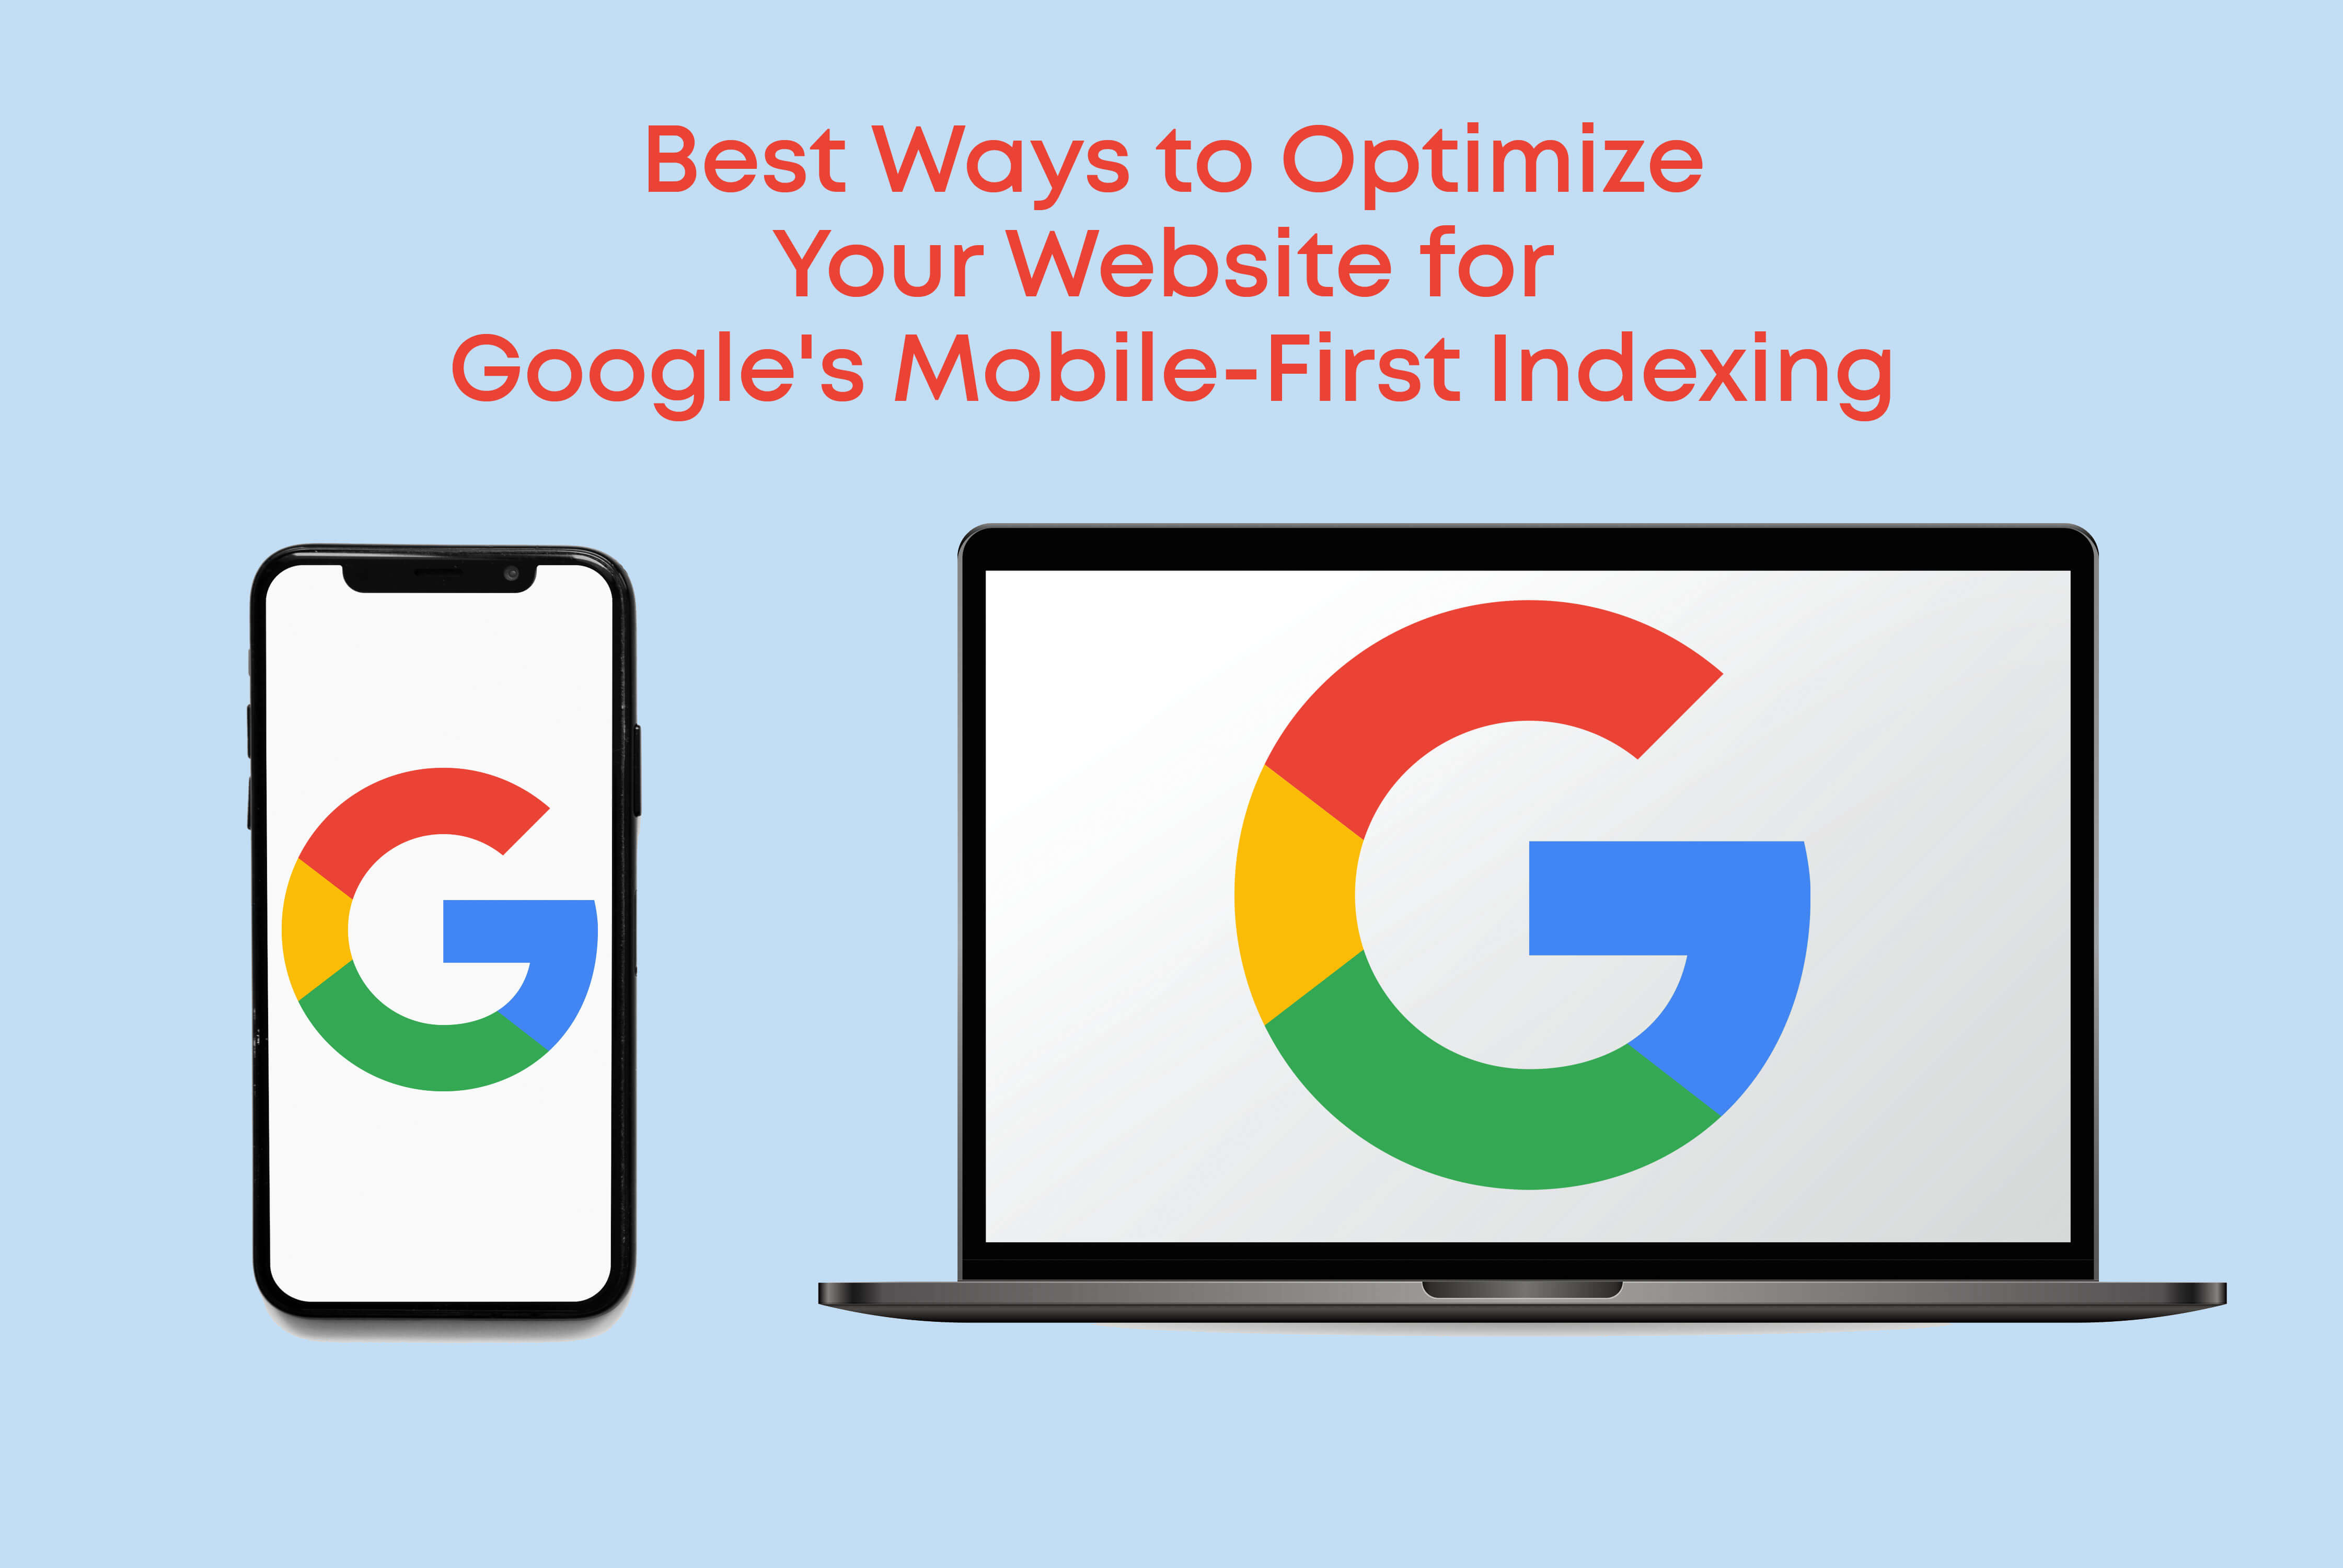 Optimize Your Website for Google's Mobile-First Indexing